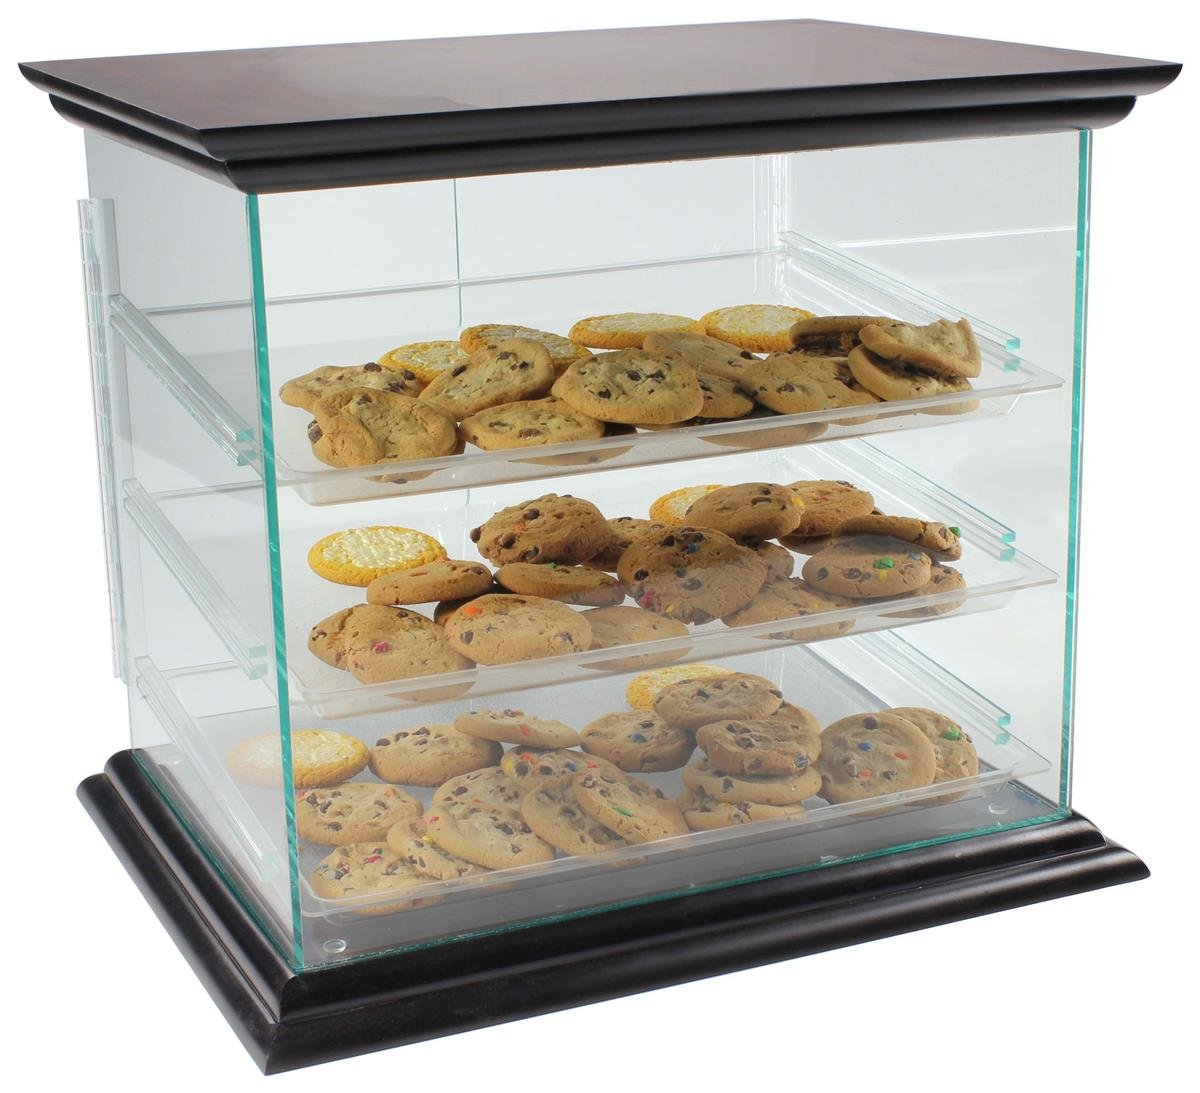 Cookie Display Case With Mahogany Canopy And Base, Countertop, Green Edge Acrylic, Hinged Magnetic Doors, Removable Trays, 21 x 18-1/4 x 17-Inch